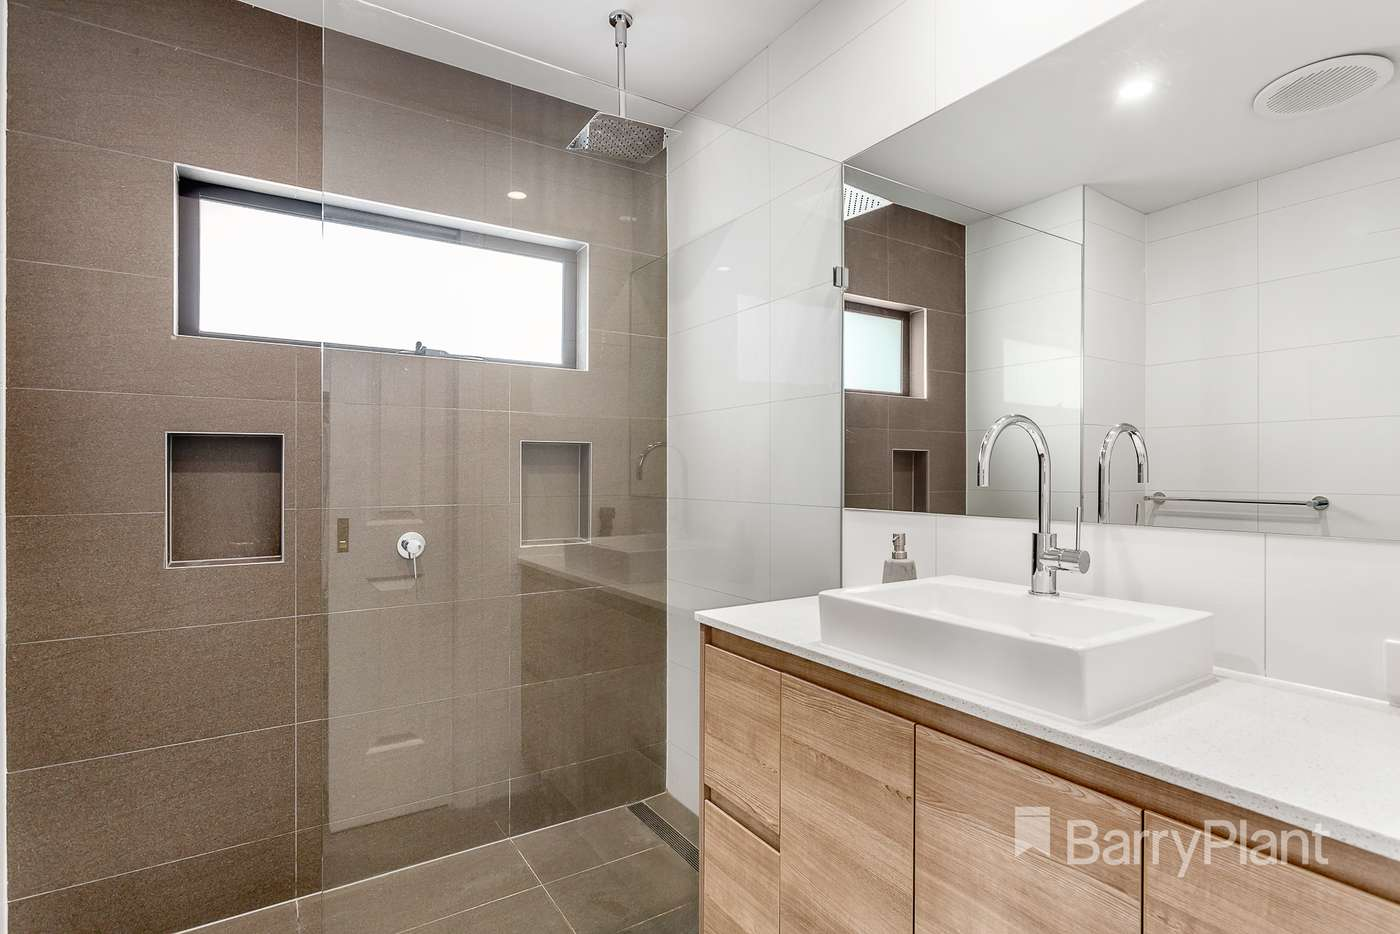 Sixth view of Homely house listing, 149 Liverpool Road, Kilsyth VIC 3137